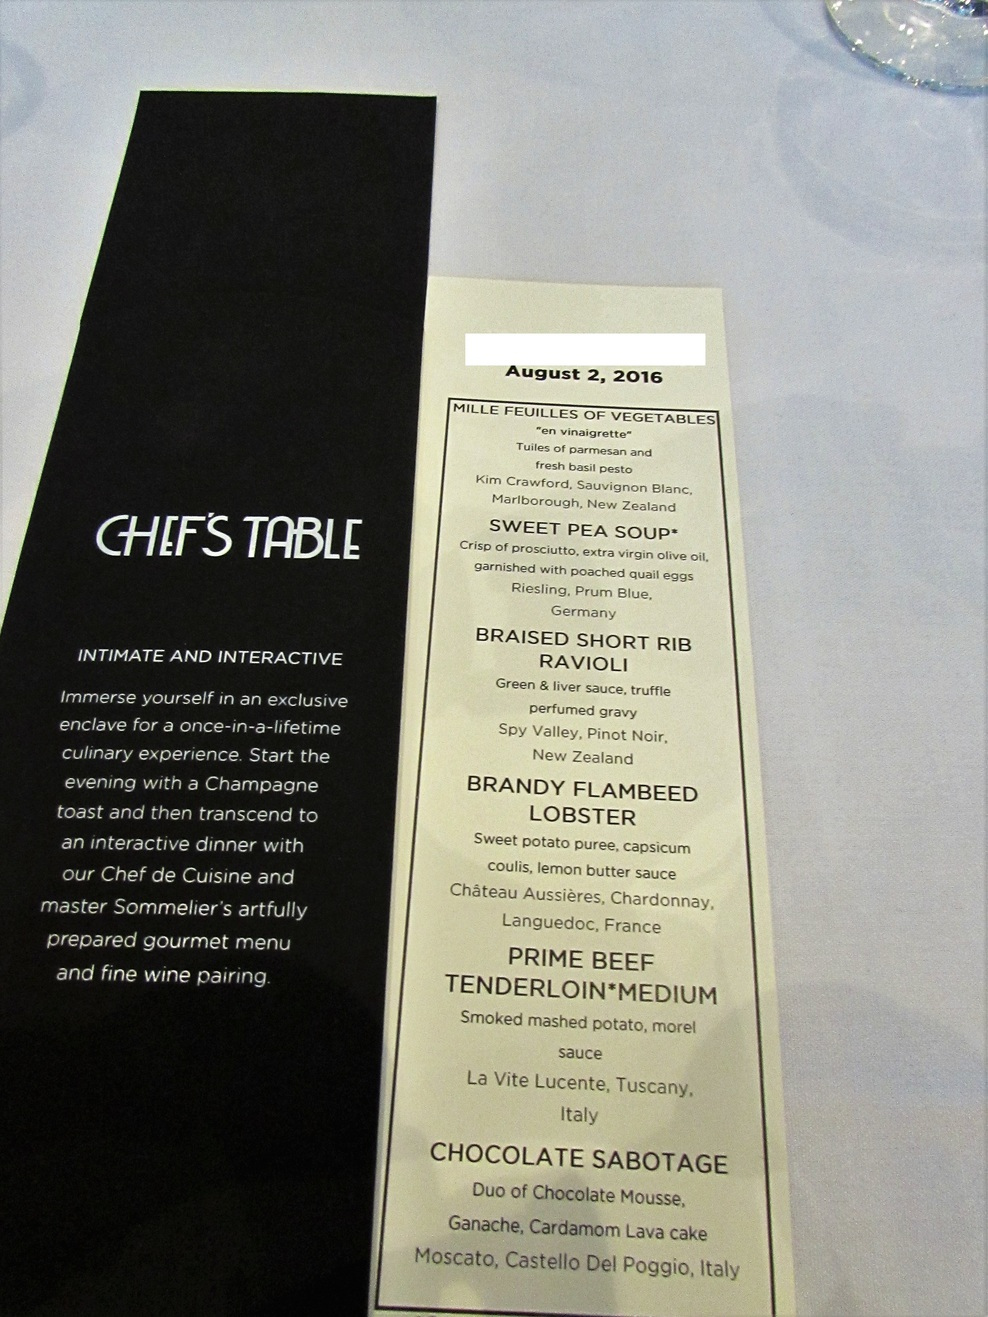 Chef's Table: Menu